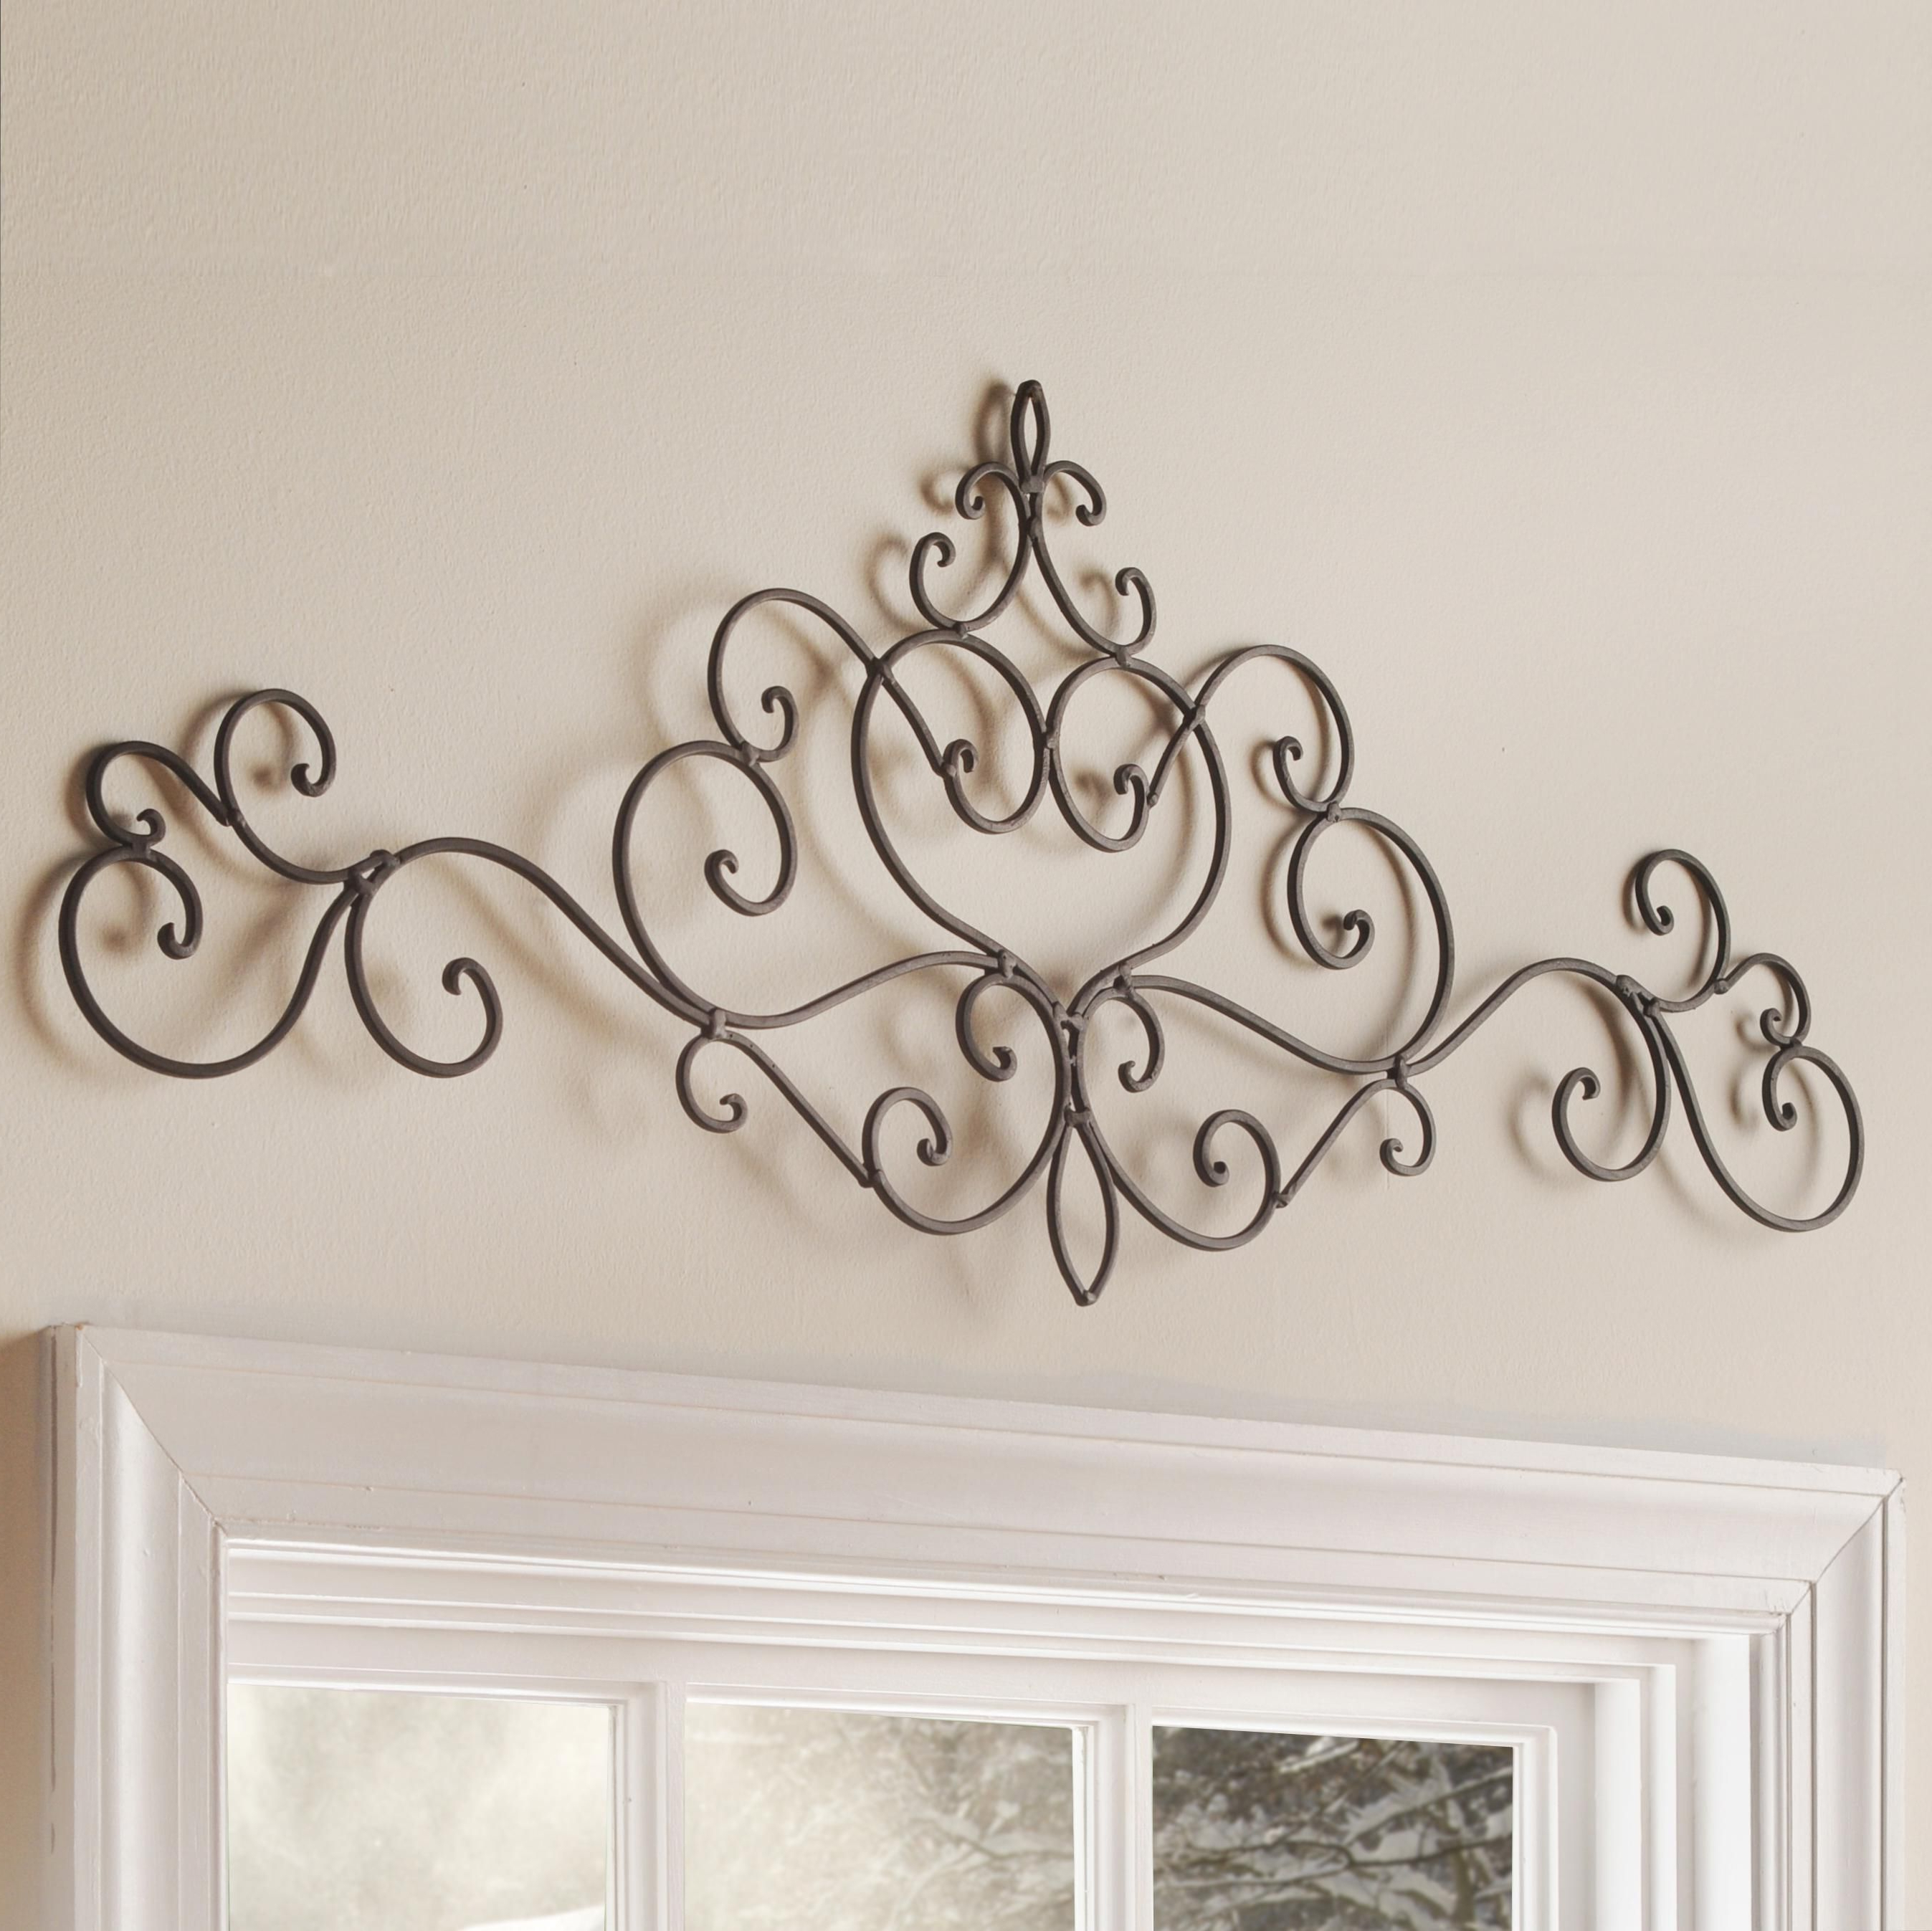 Wall Decor Within Ornamental Wood And Metal Scroll Wall Decor (View 14 of 20)